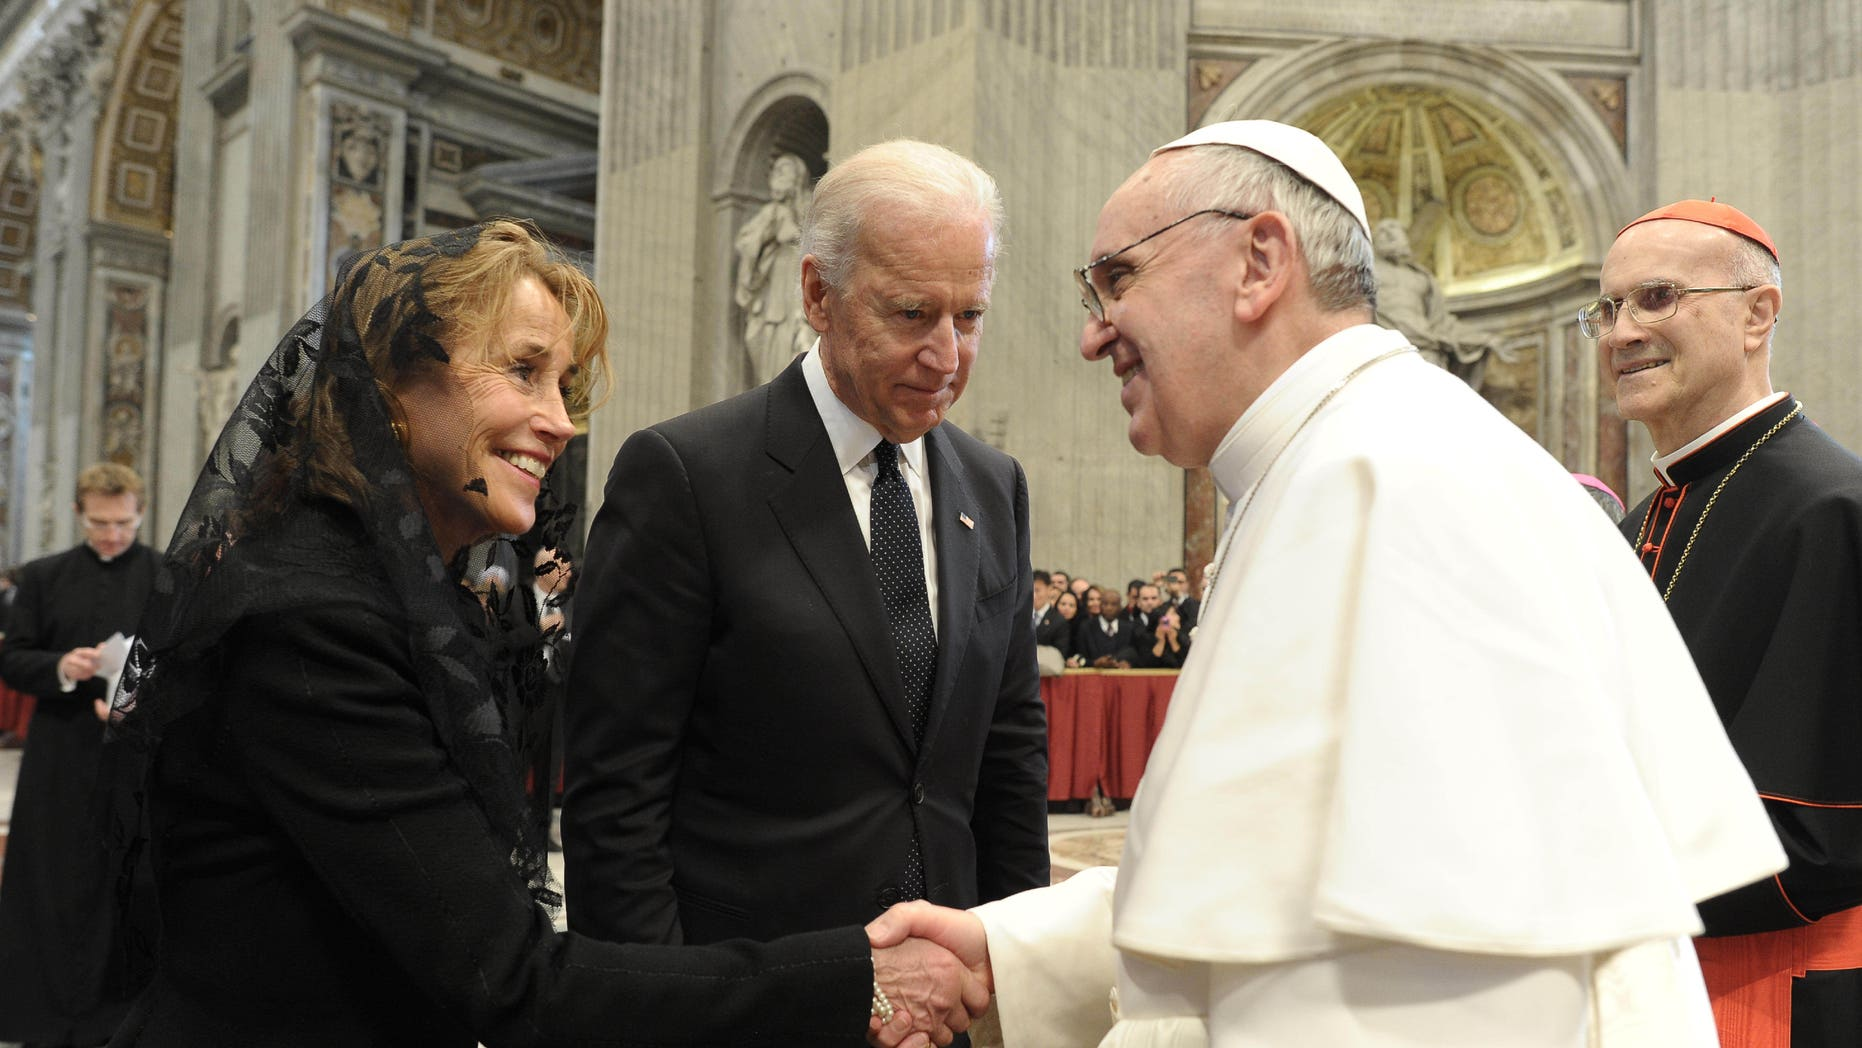 In this photo provided by the Vatican paper L'Osservatore Romano, Pope Francis meets U.S. Vice President Joe Biden and his sister, Valerie Biden Owens, after his installation Mass at the Vatican on Tuesday, March 19, 2013. Pope Francis has urged princes, presidents, sheikhs and thousands of ordinary people gathered for his installation Mass to protect God's creation, the weakest and the poorest of the world. (AP Photo/L'Osservatore Romano)